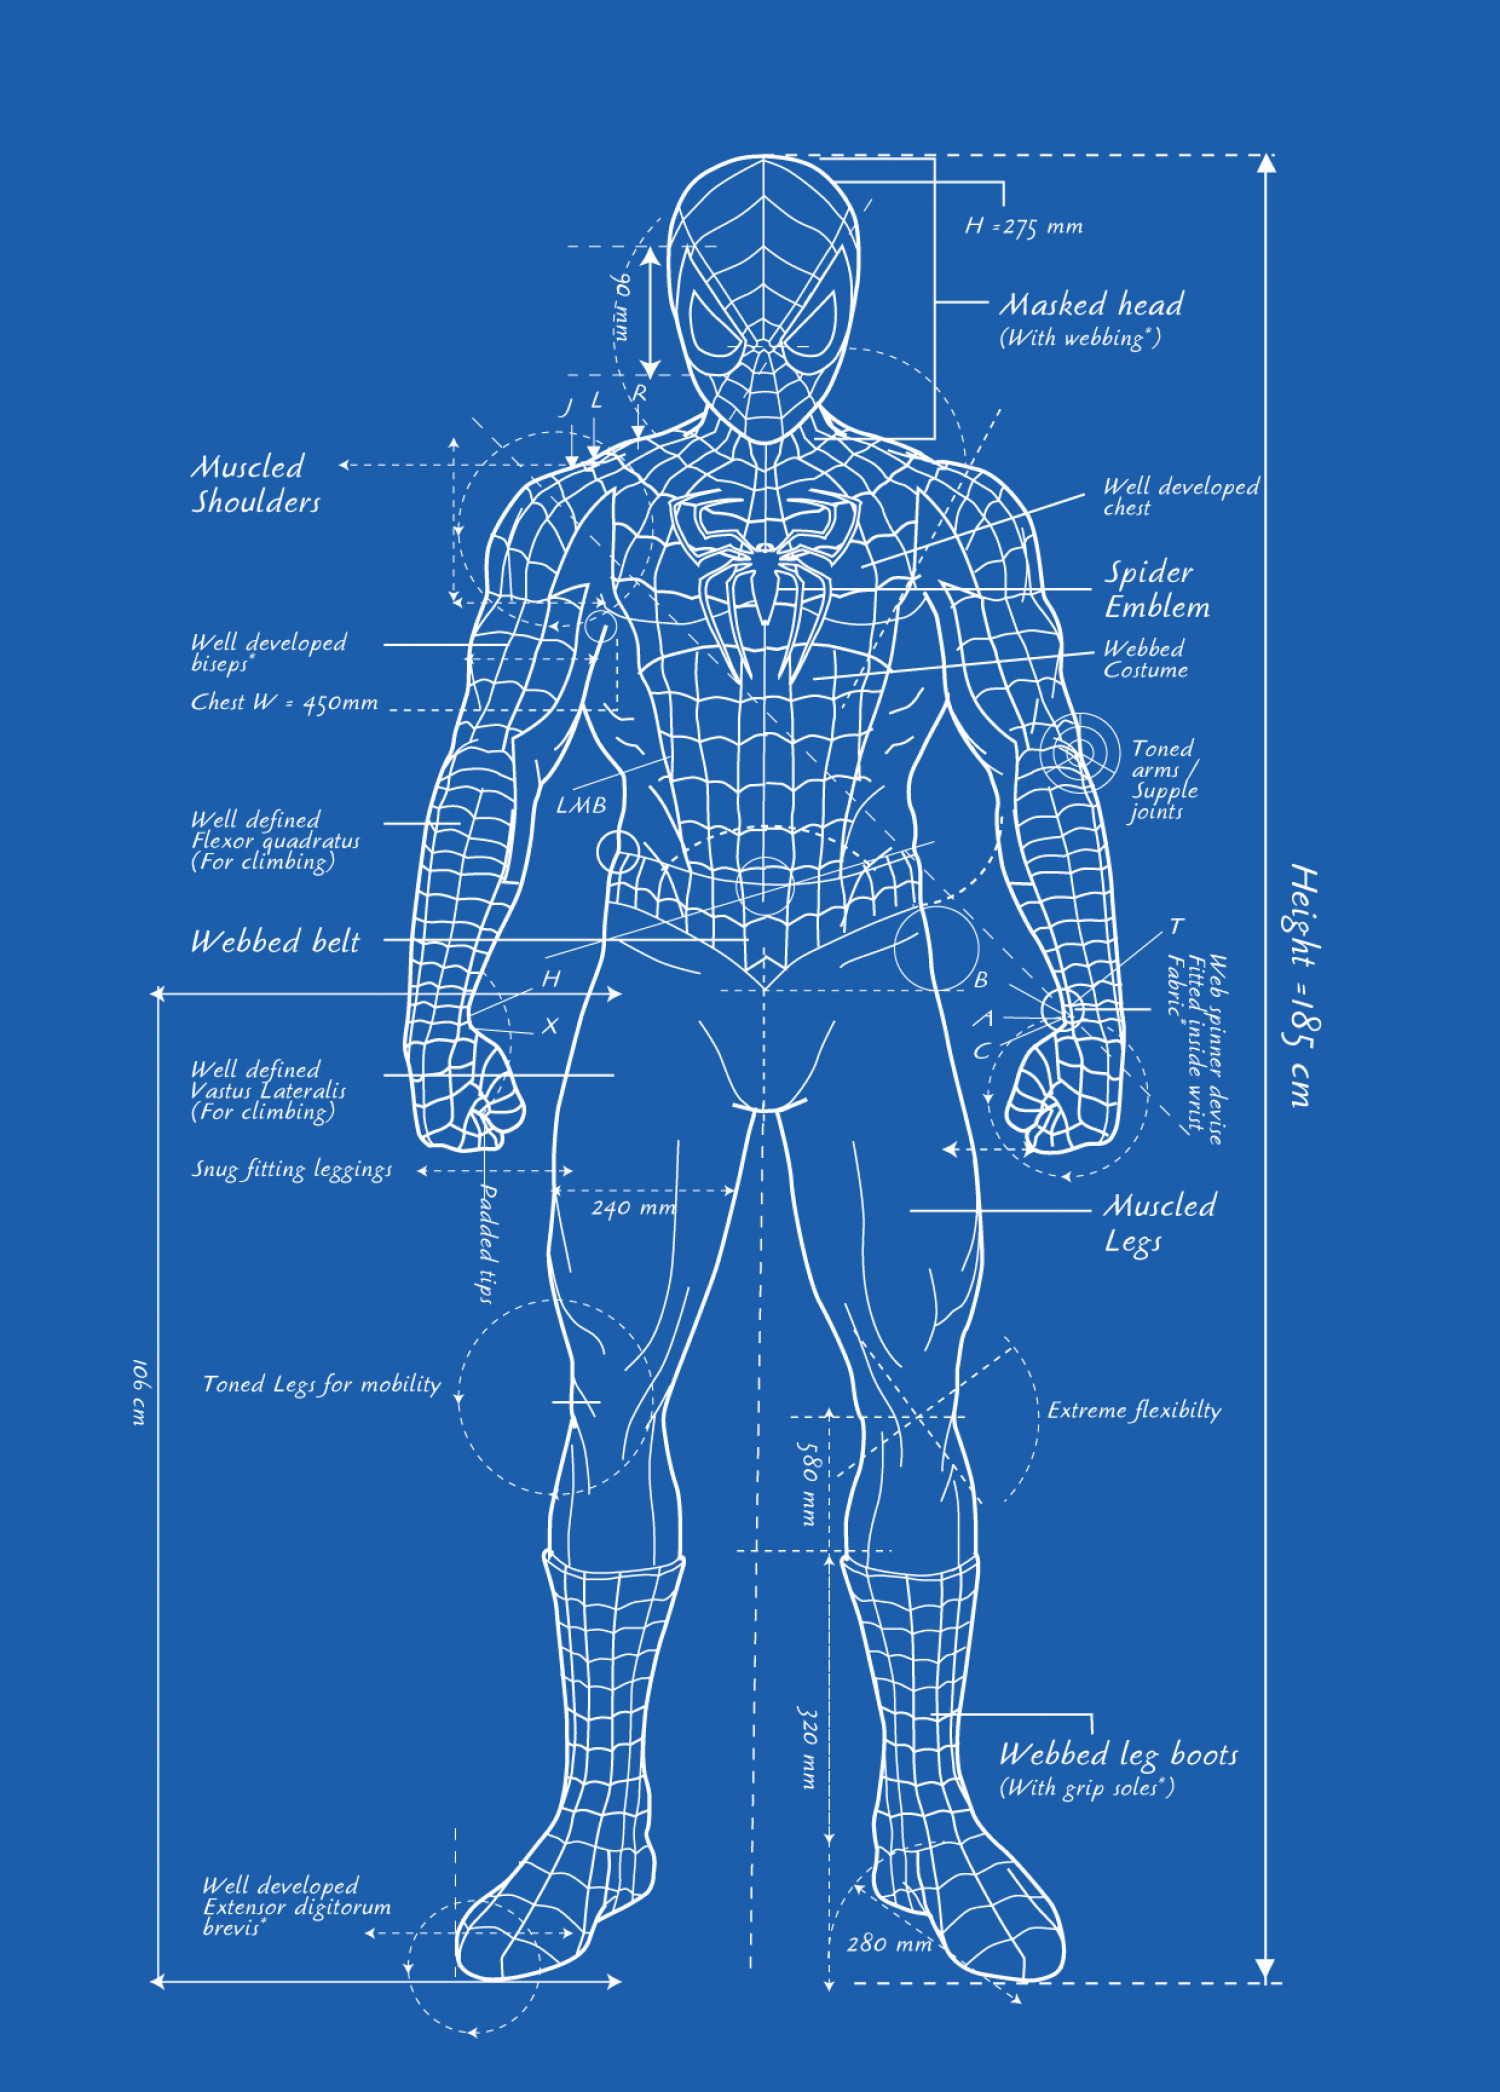 Spiderman musica for Web design blueprints